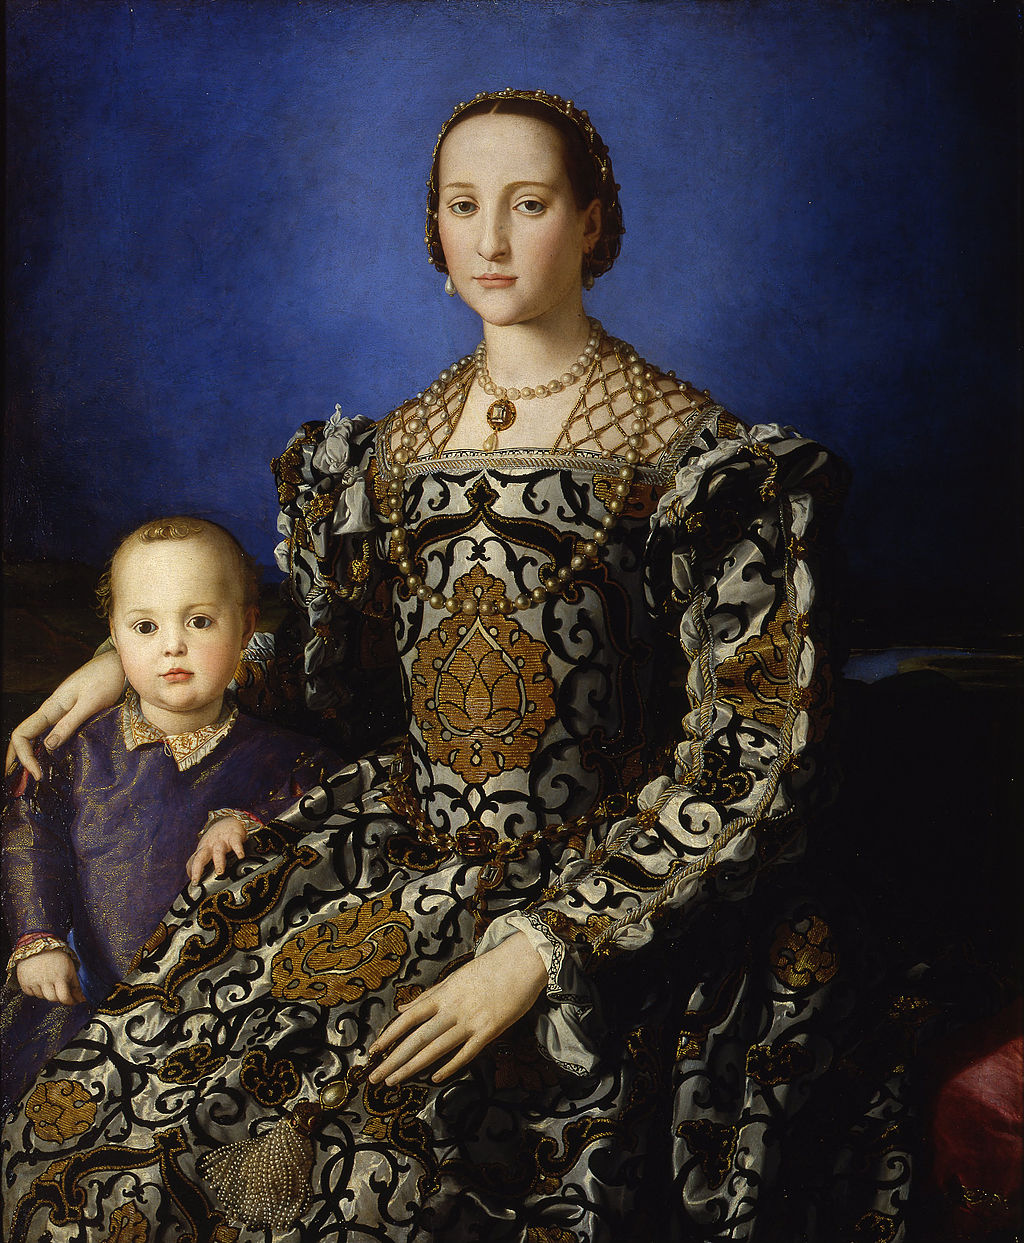 Renaissance florentine costume. 16th century gown. Eleanor of Toledo